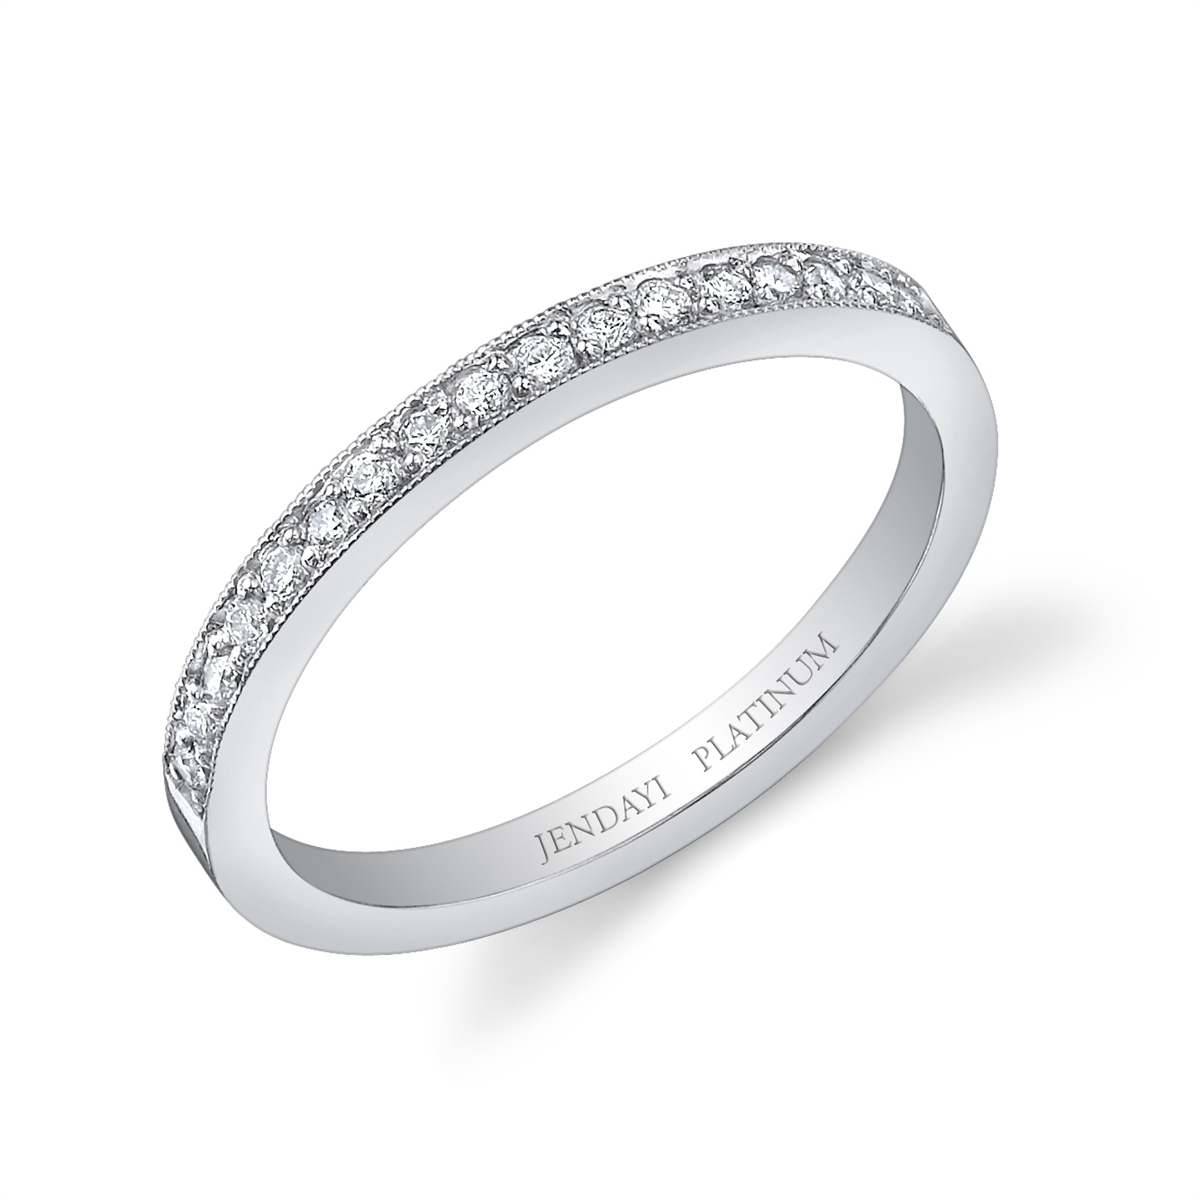 Selisa Pave Platinum Wedding / Anniversary Band Pertaining To Most Recently Released Diamond Anniversary Bands In Platinum (Gallery 3 of 25)